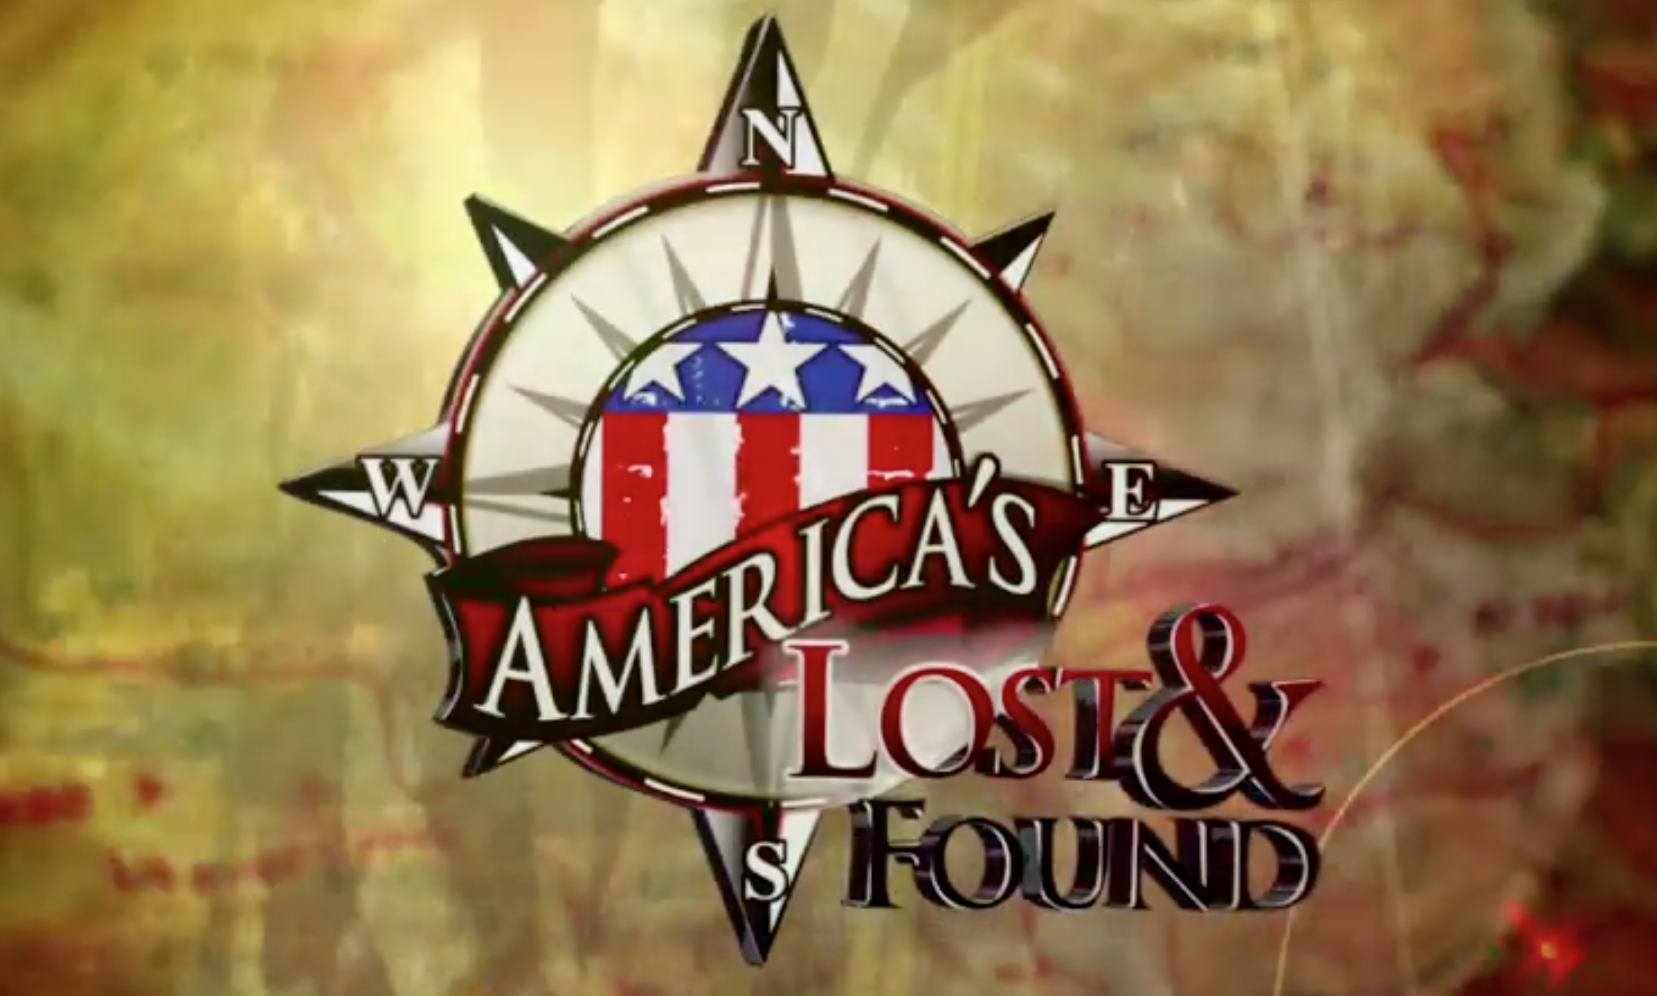 America's Lost and Found